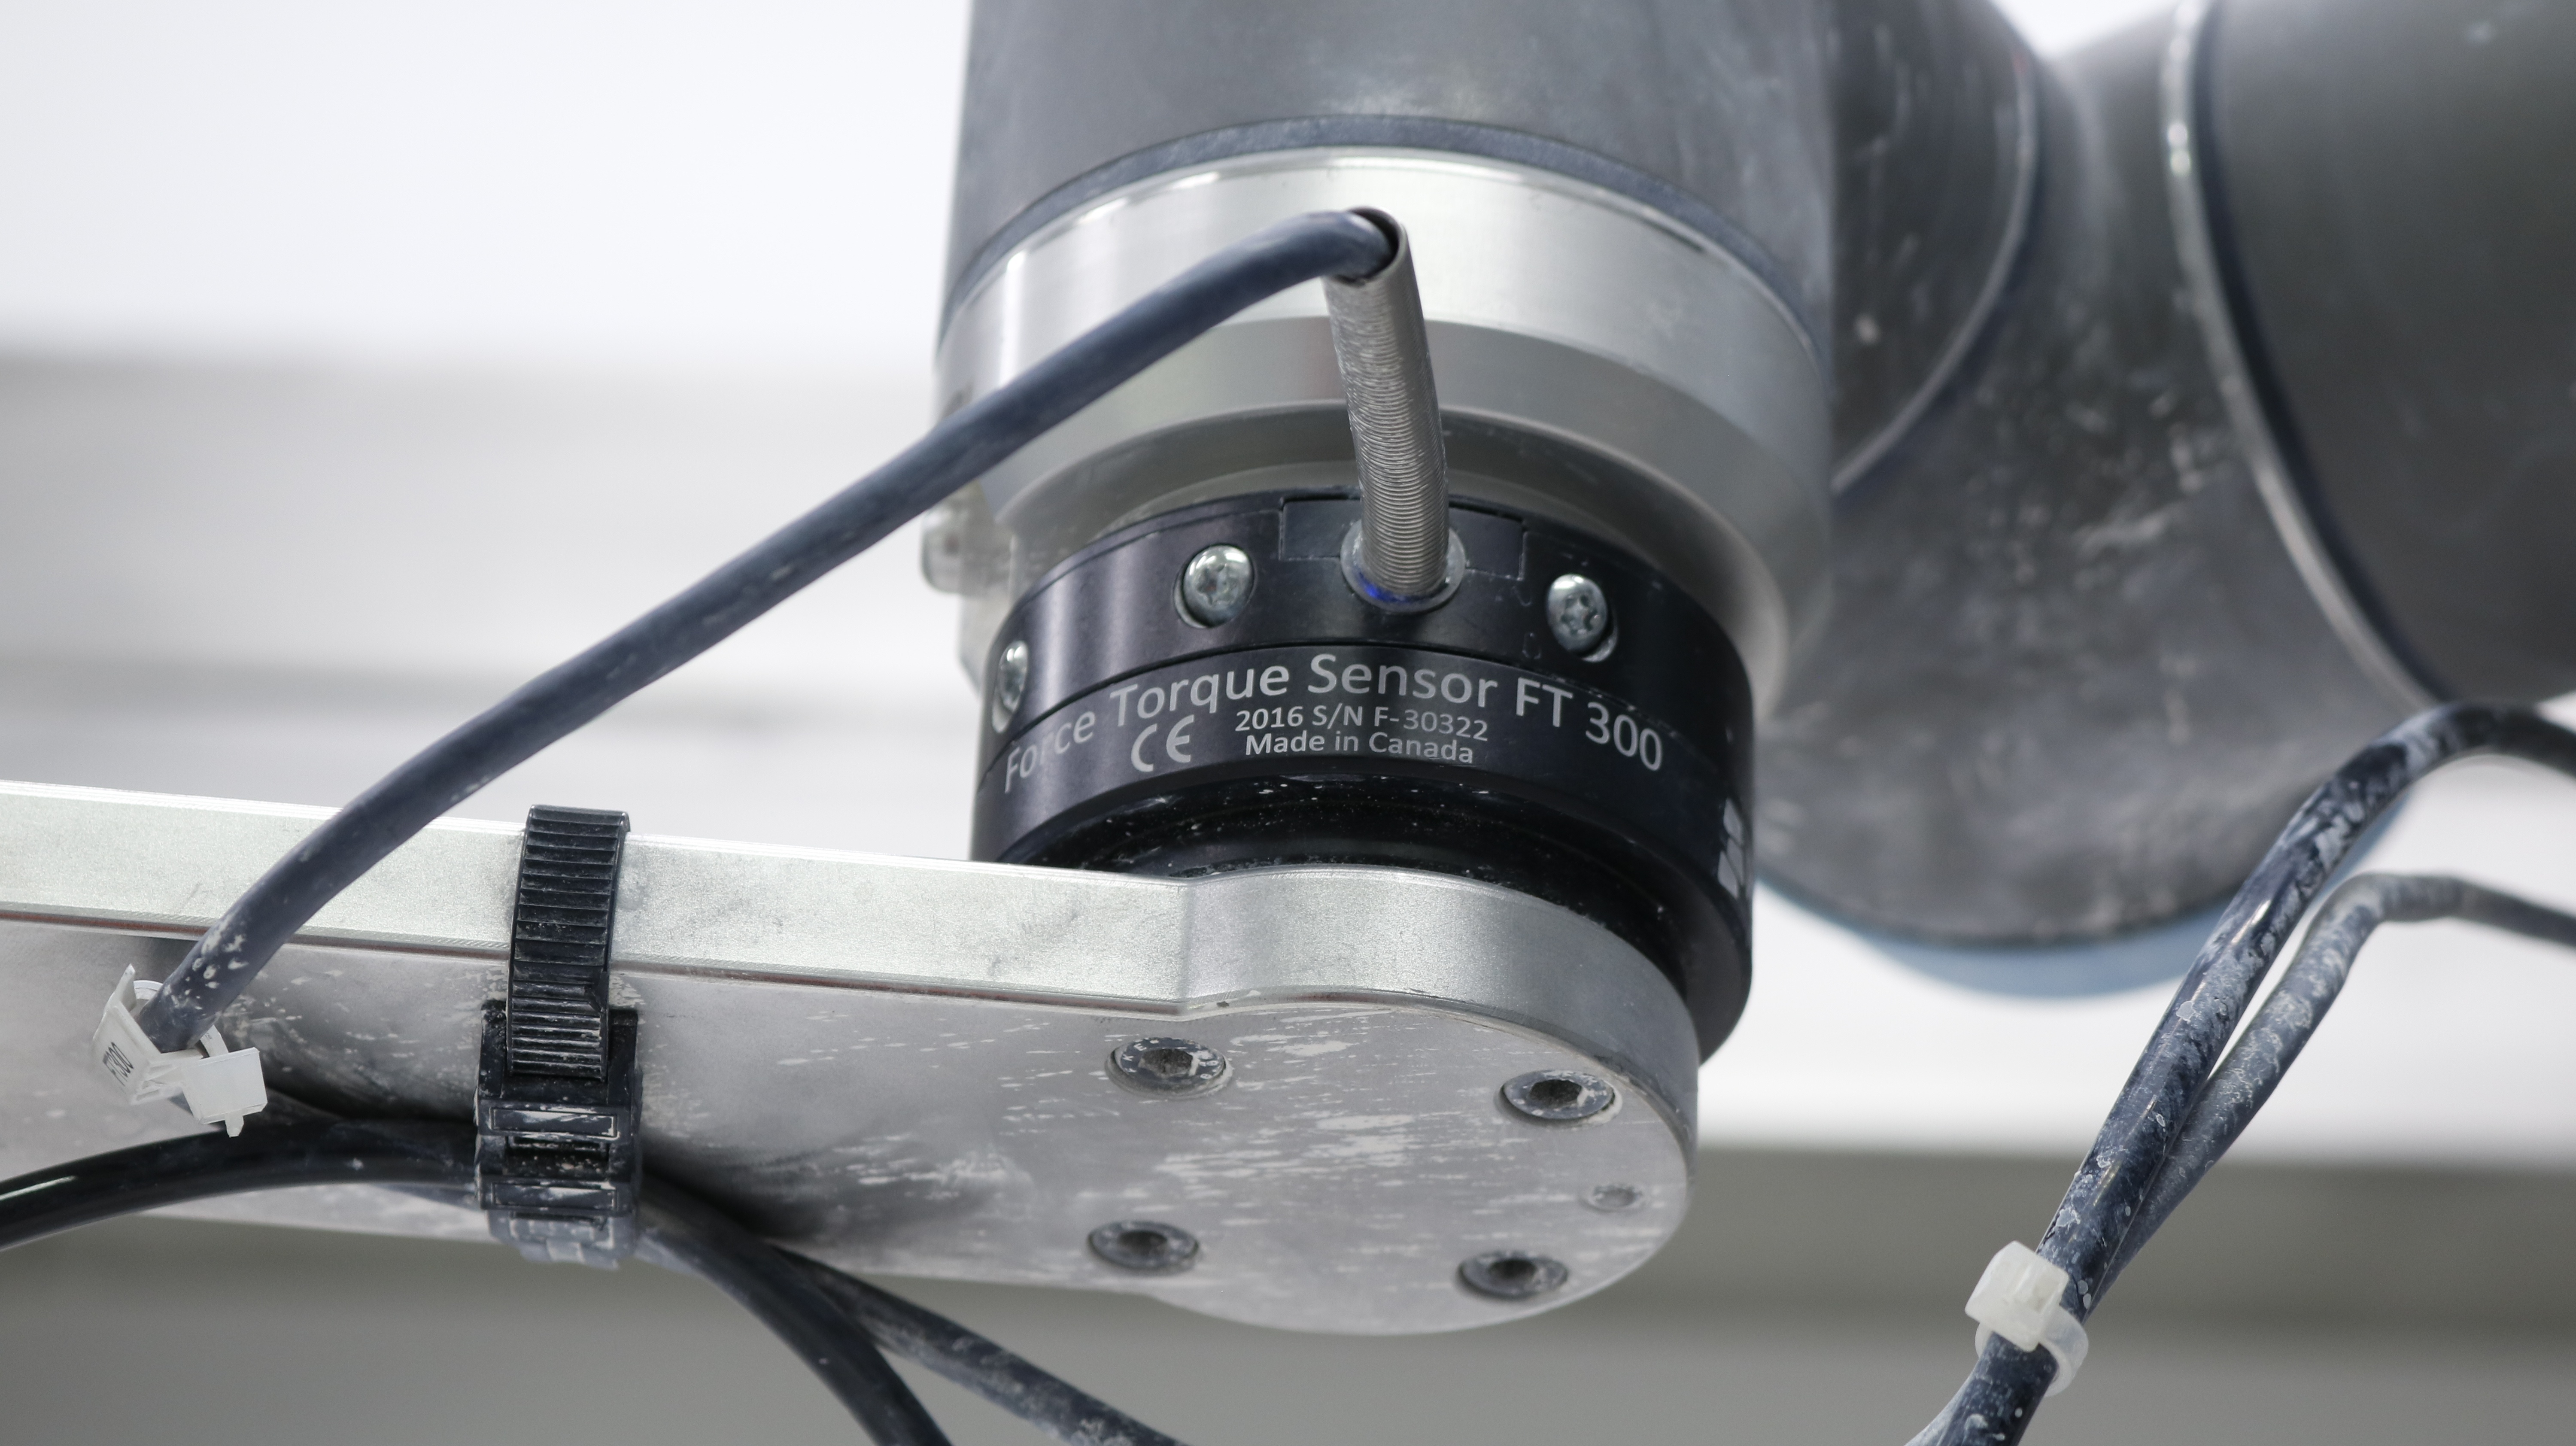 Can I use the FT300 to reach safety requirements?